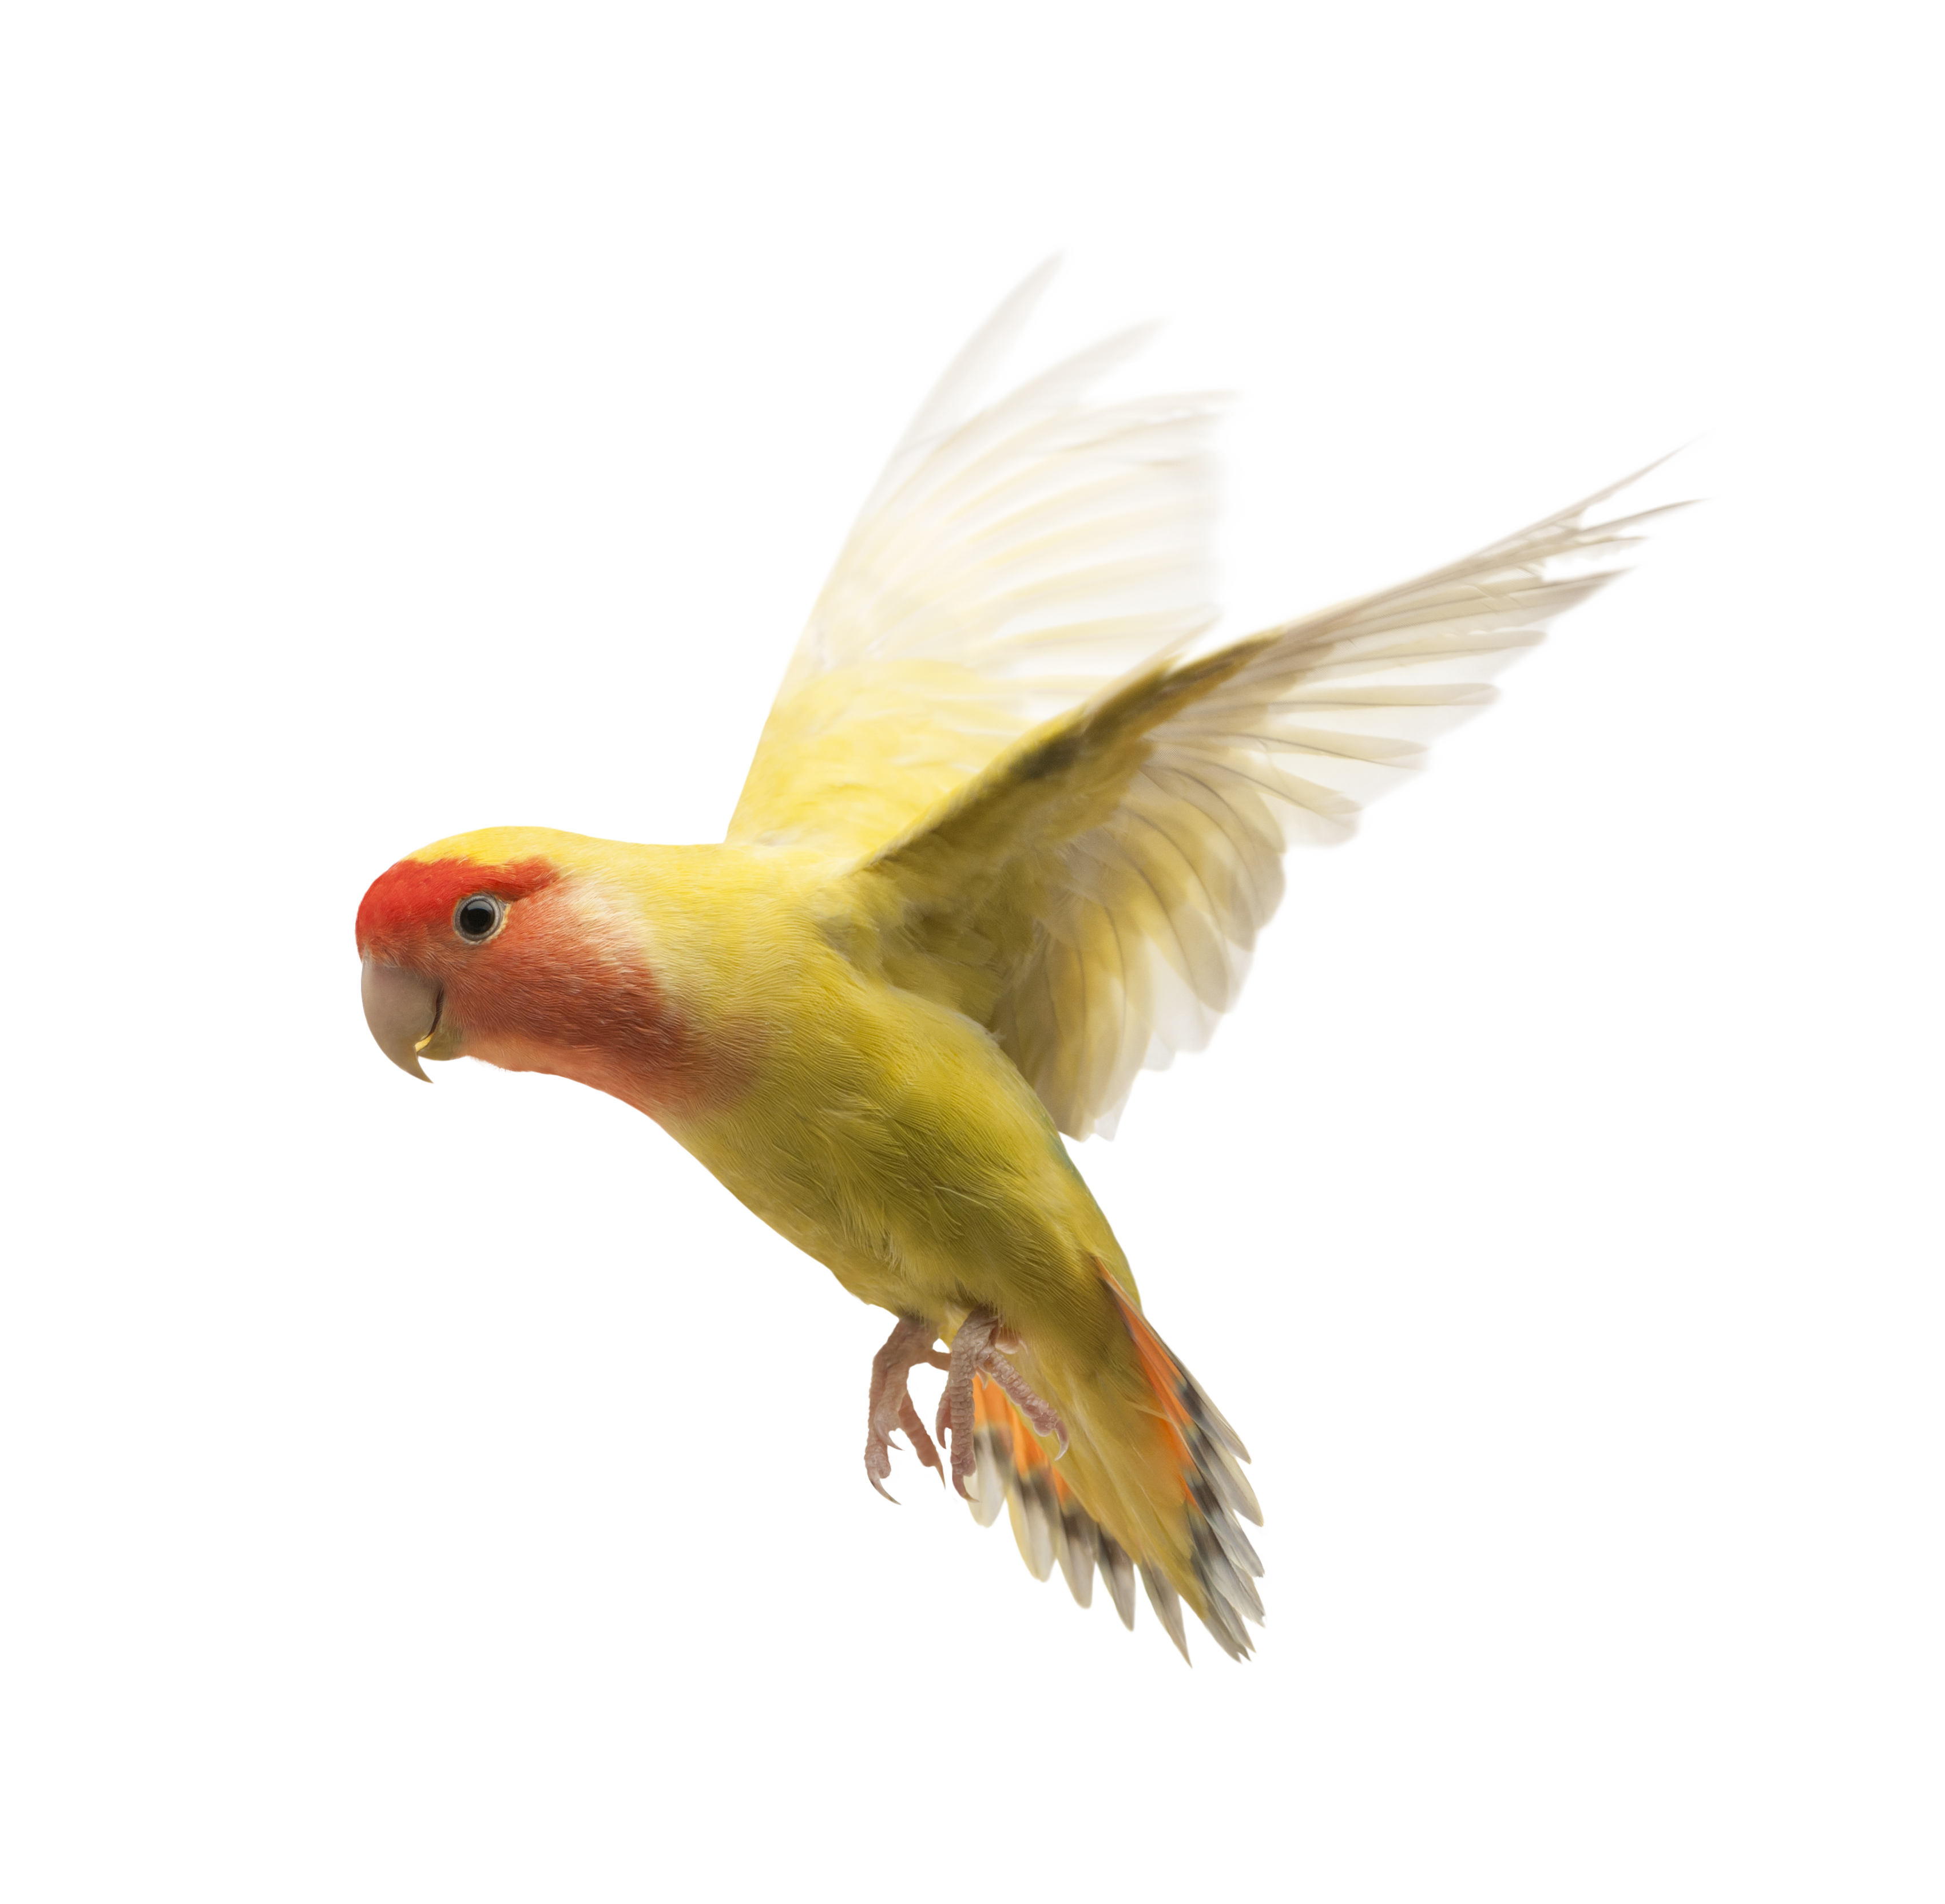 Yellow Parrot HD Png Bird, Natural, Talking, Feeding 28417